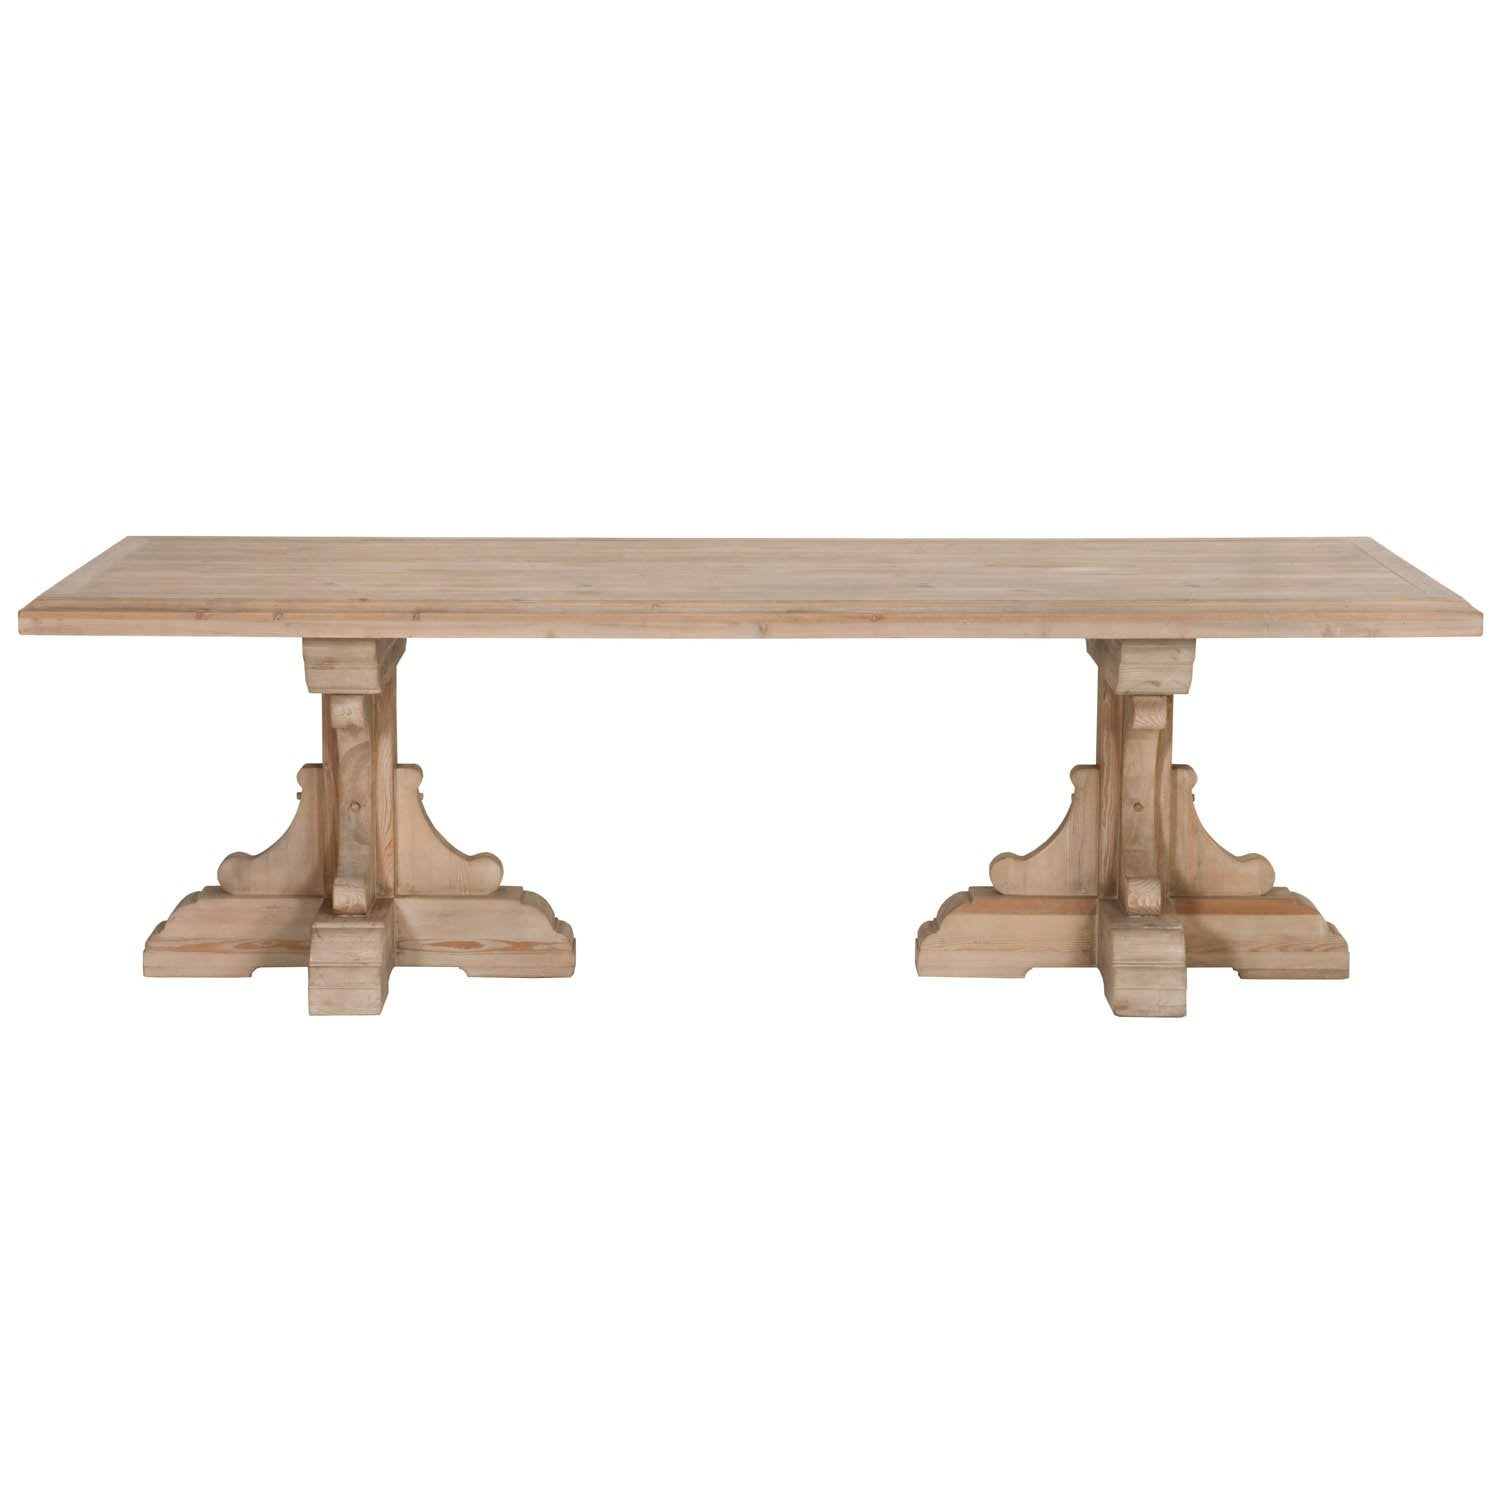 Bastille Rectangle Dining Table in Smoke Gray Pine